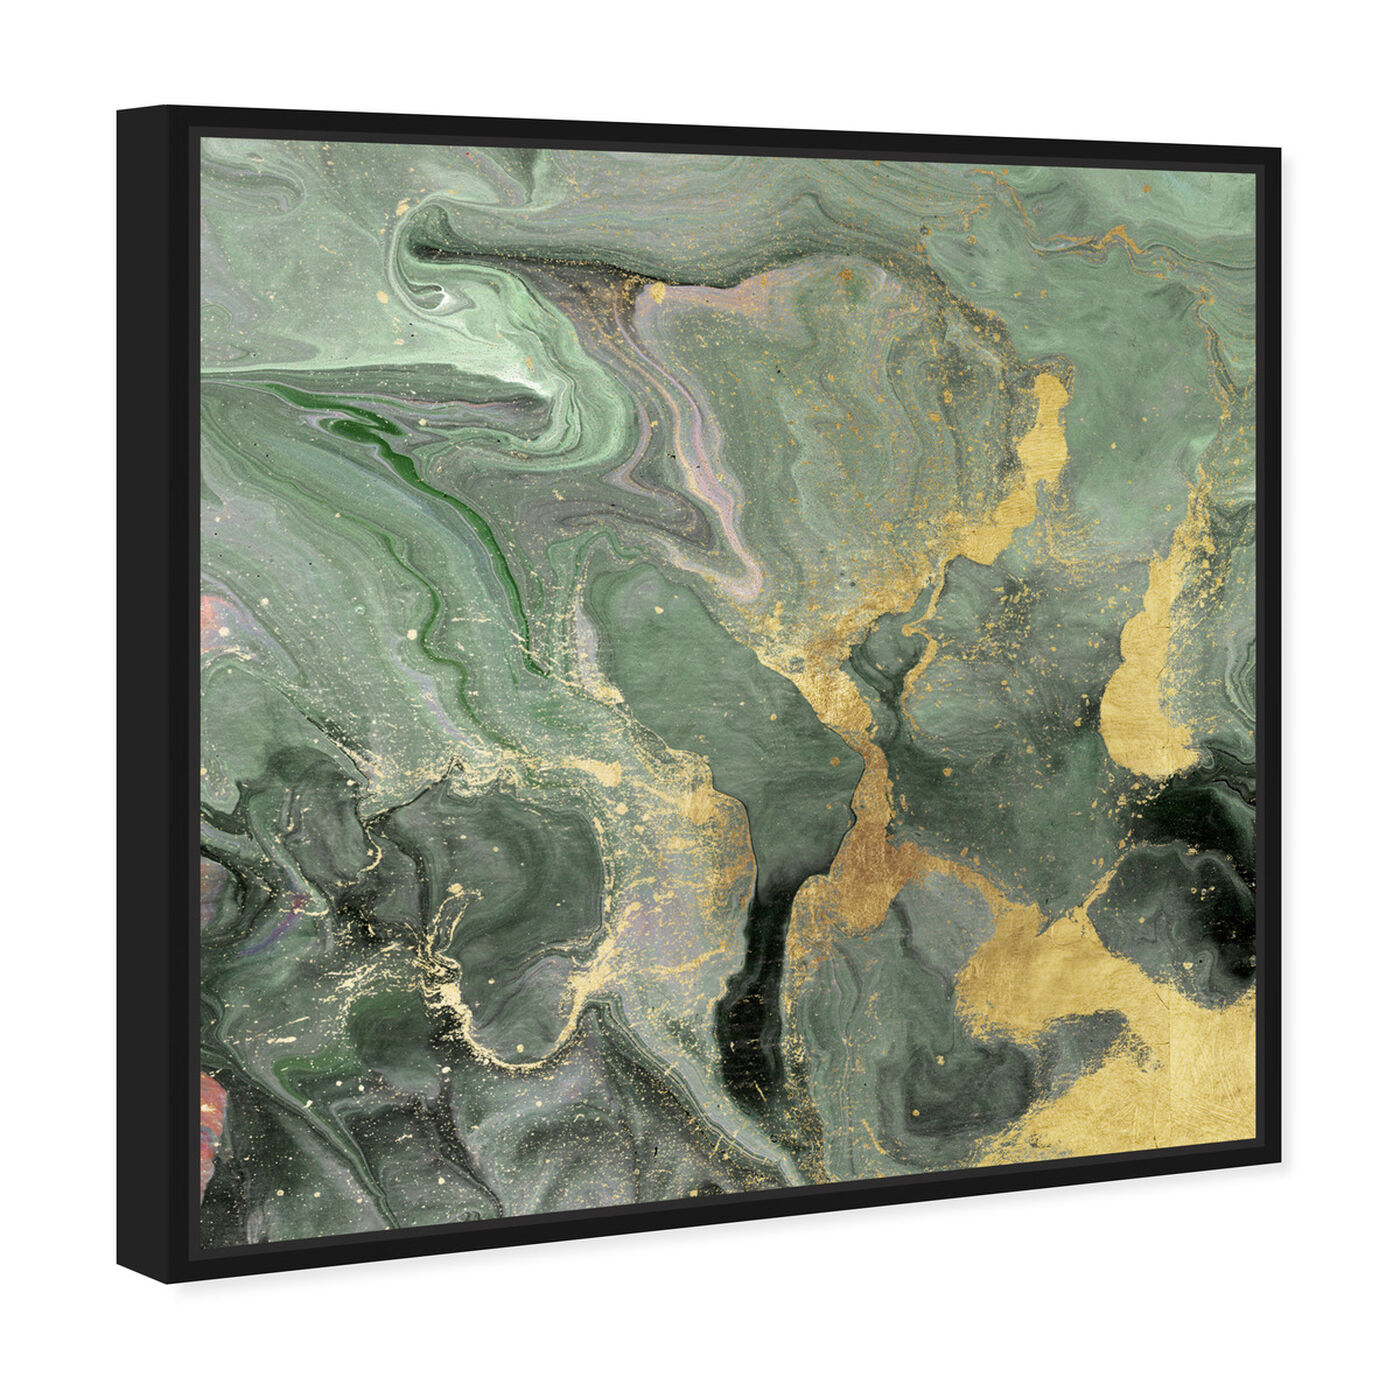 Angled view of Jade Cosmos featuring abstract and crystals art.